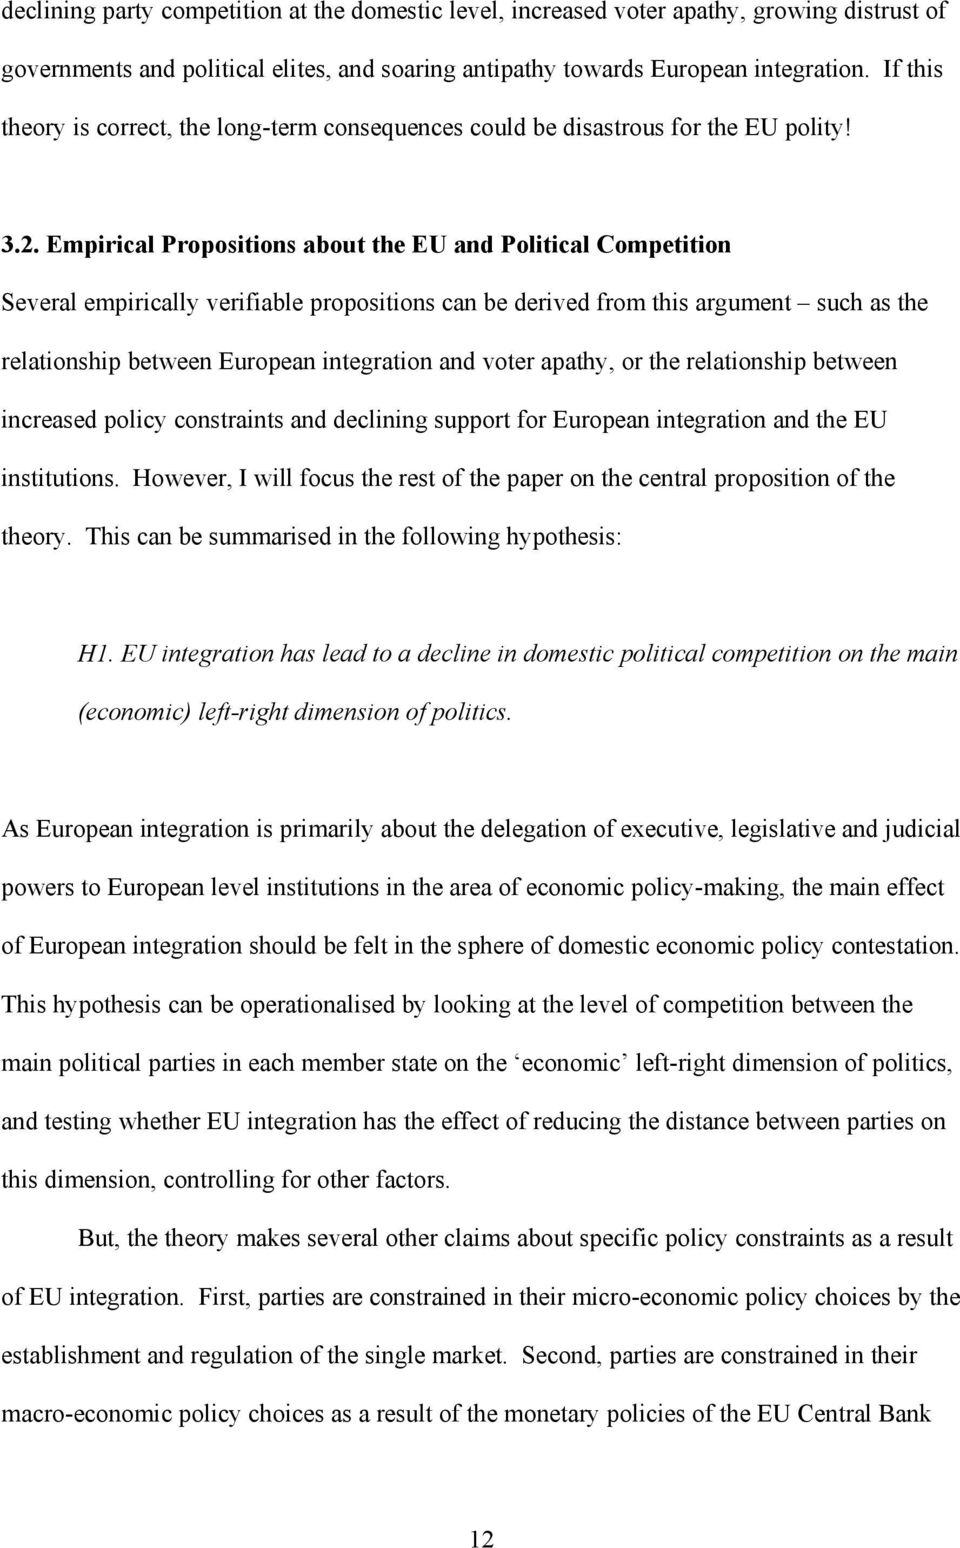 Empirical Propositions about the EU and Political Competition Several empirically verifiable propositions can be derived from this argument such as the relationship between European integration and